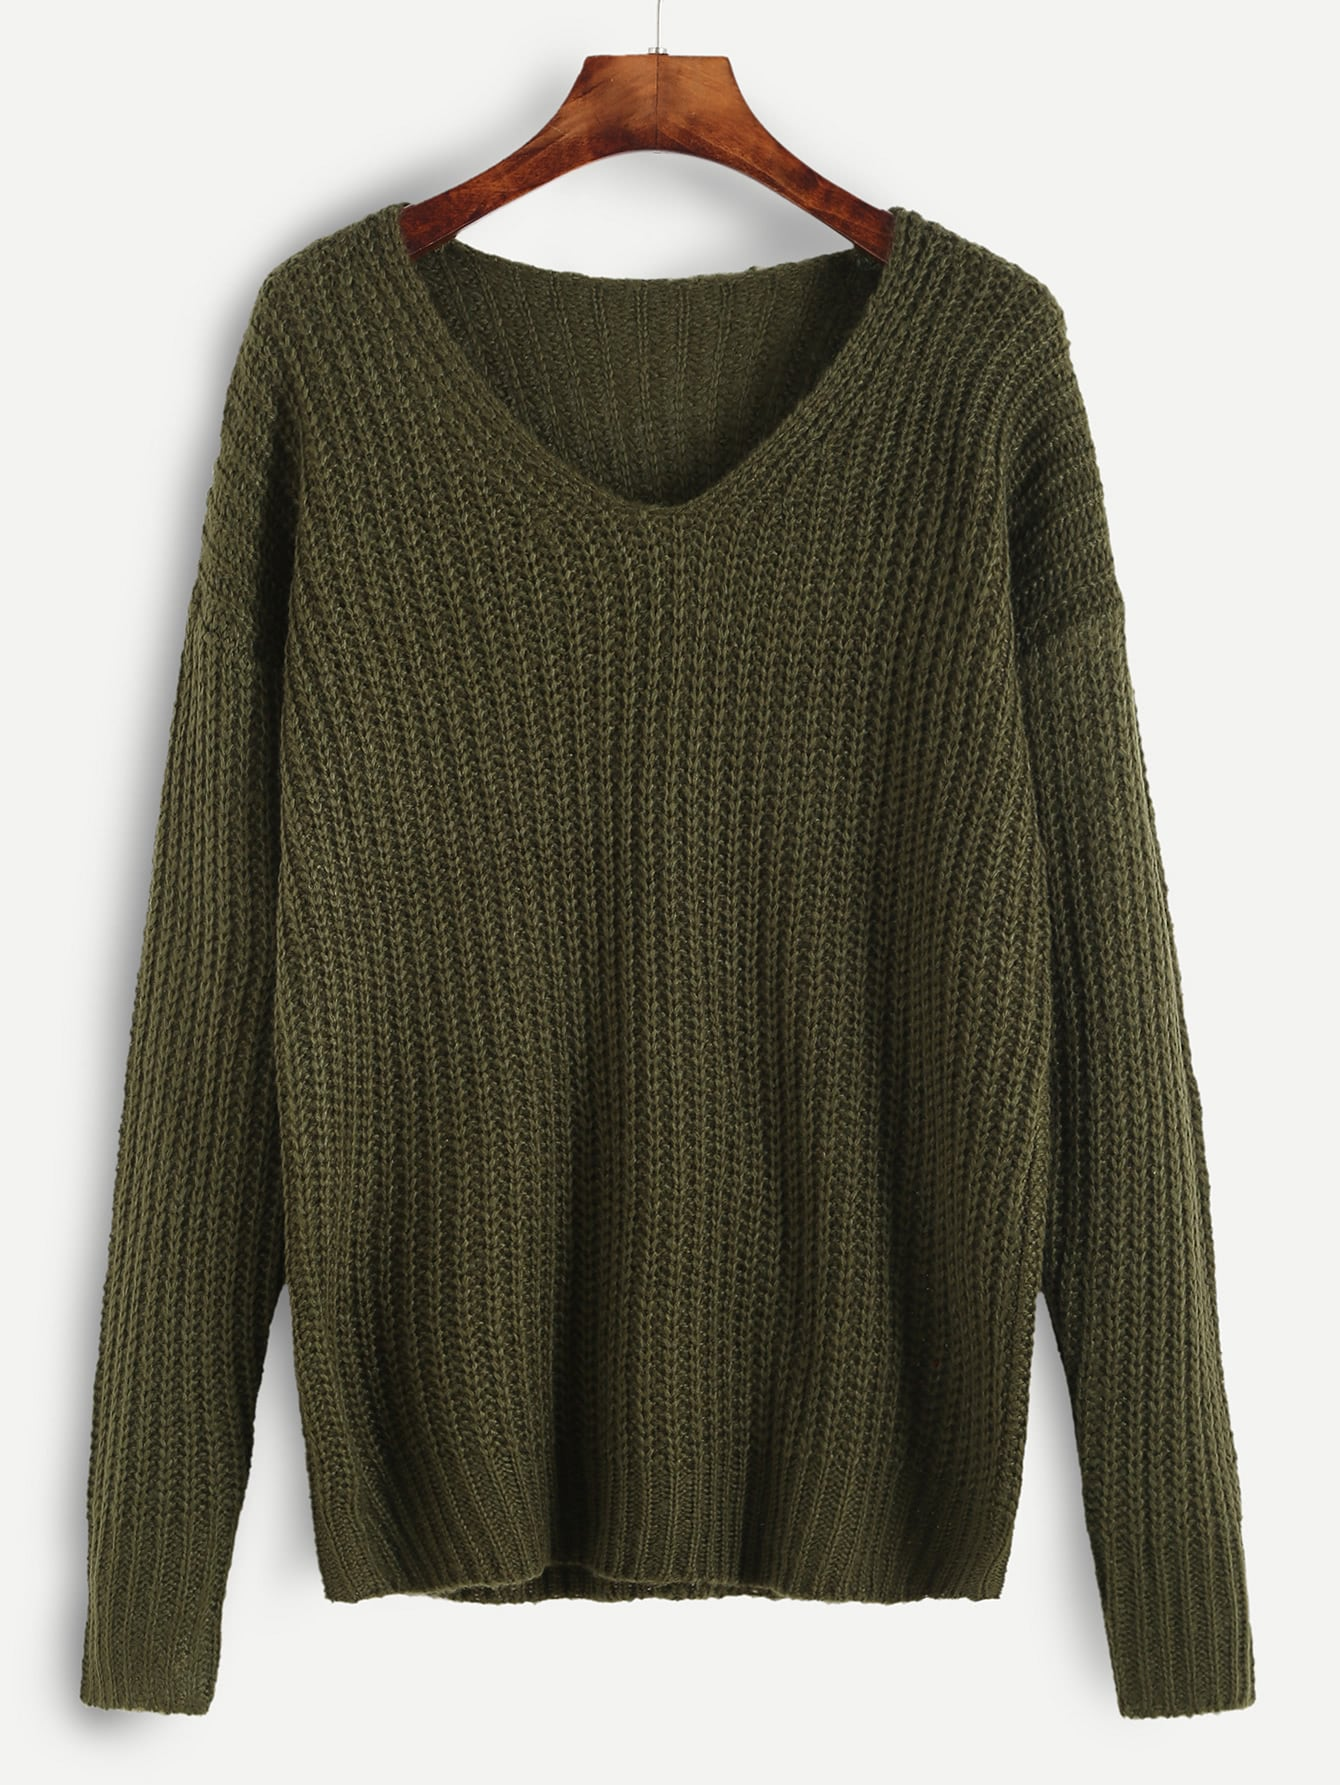 Olive Green Ribbed Knit Drop Shoulder Sweater sweater160920458